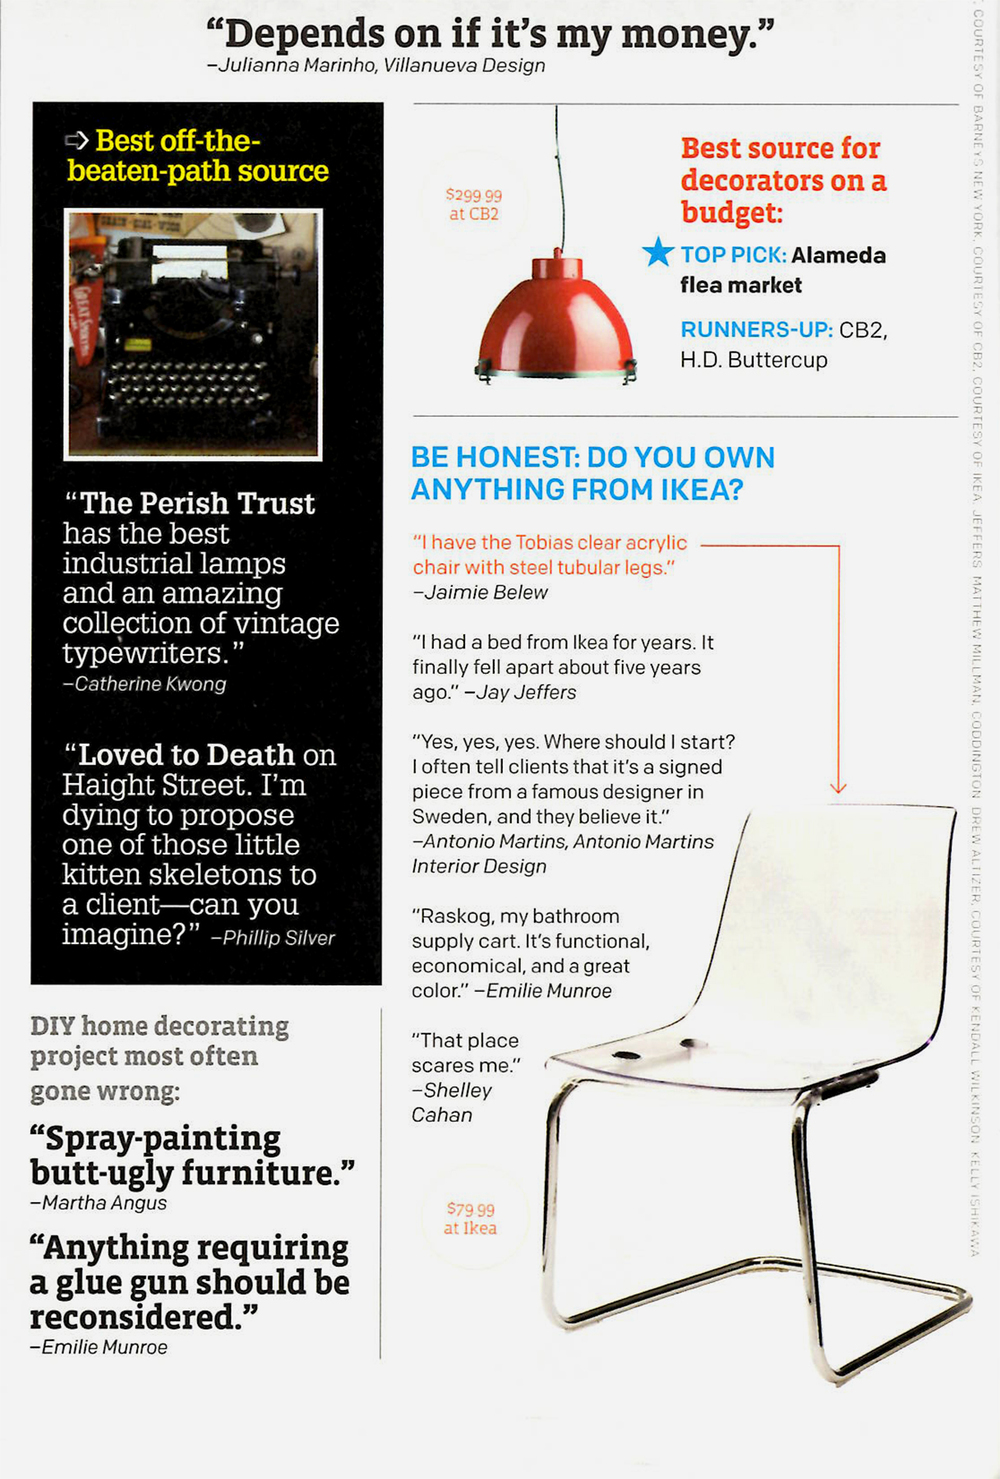 27 c San Francisco Magazine 3 - Article Pg 2.jpg